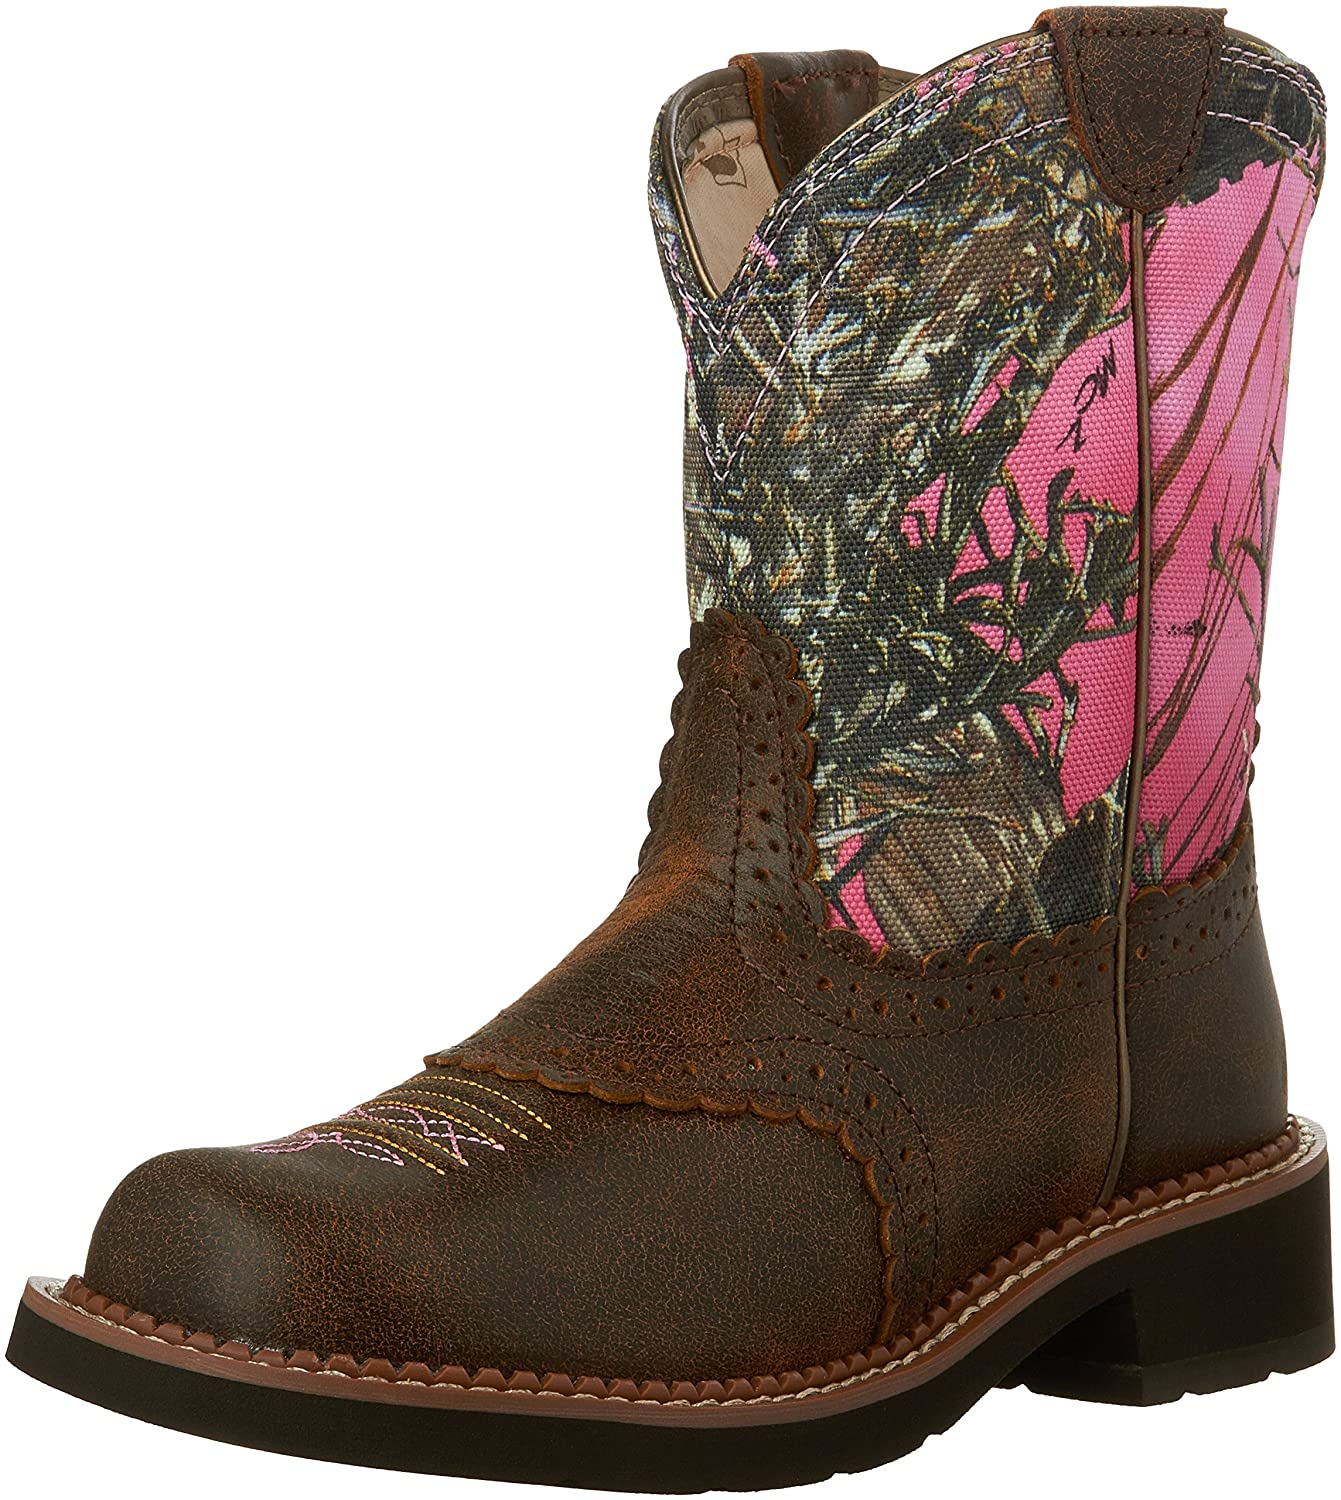 1ee724cb40da5 Amazon.com | Ariat Women's Fatbaby Cowgirl Western Cowboy Boot | Mid-Calf